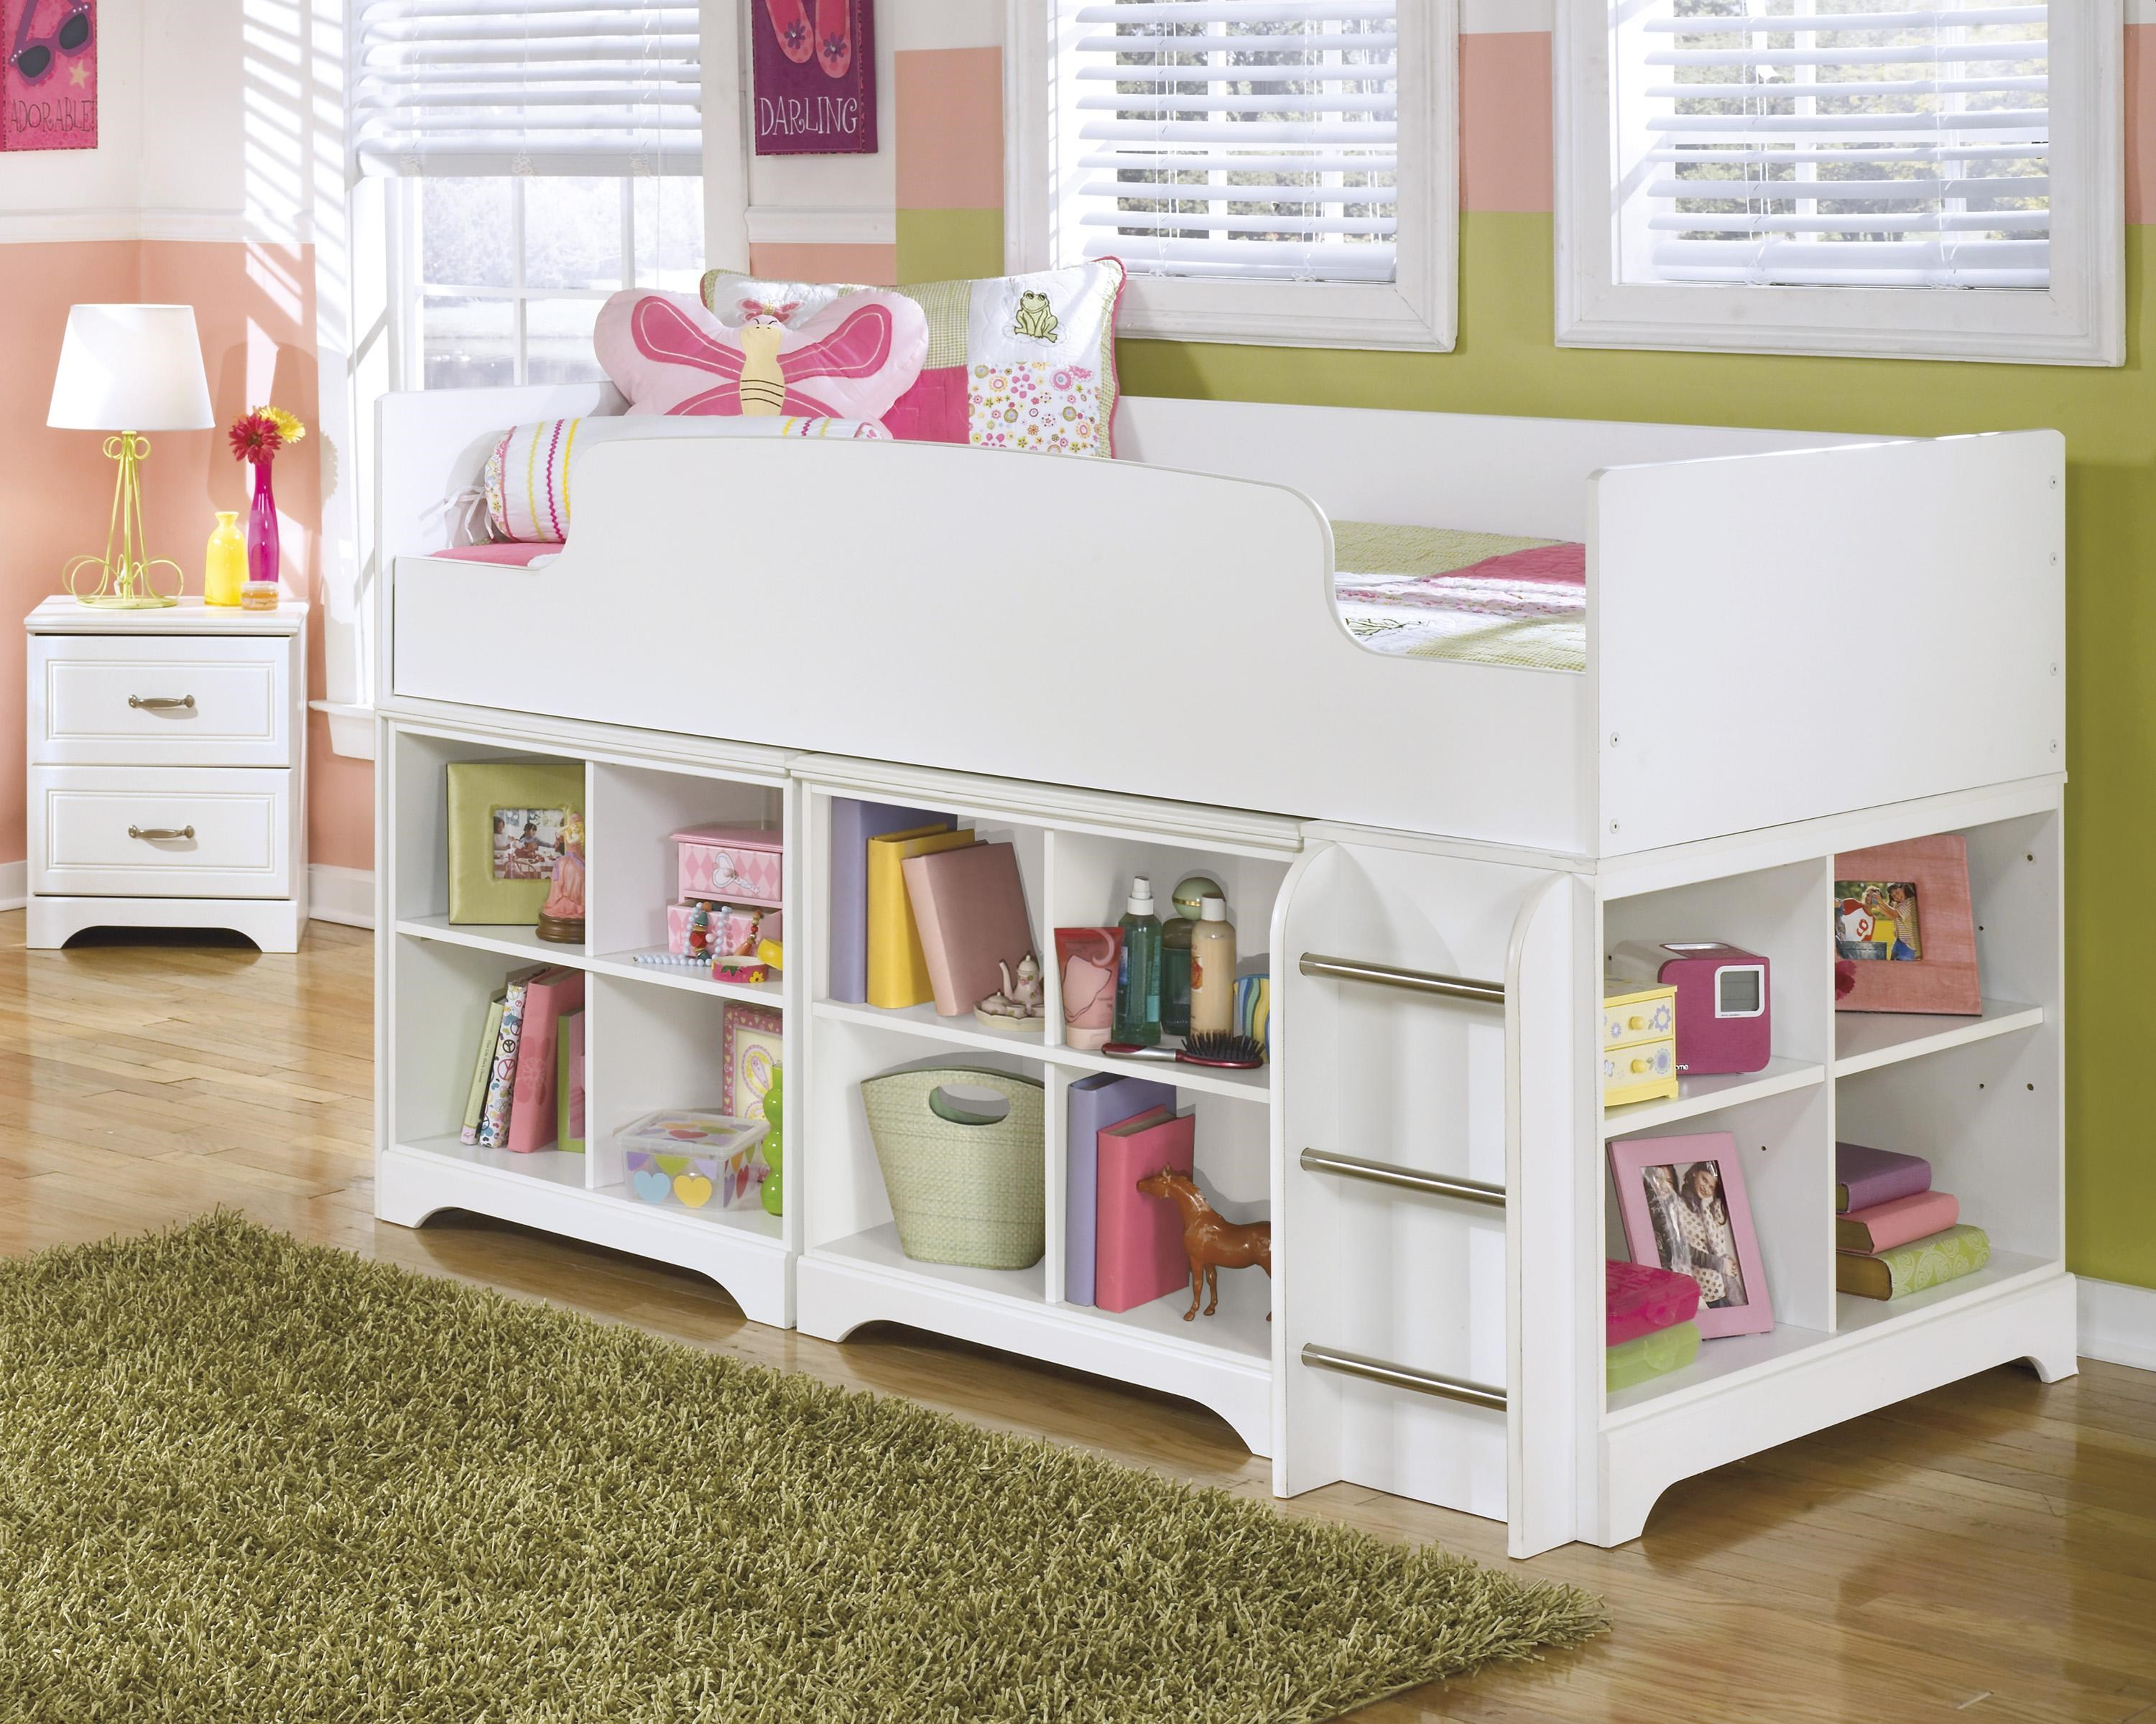 ... Signature Design By Ashley LuluTwin Loft Bed With Loft Bin Storage